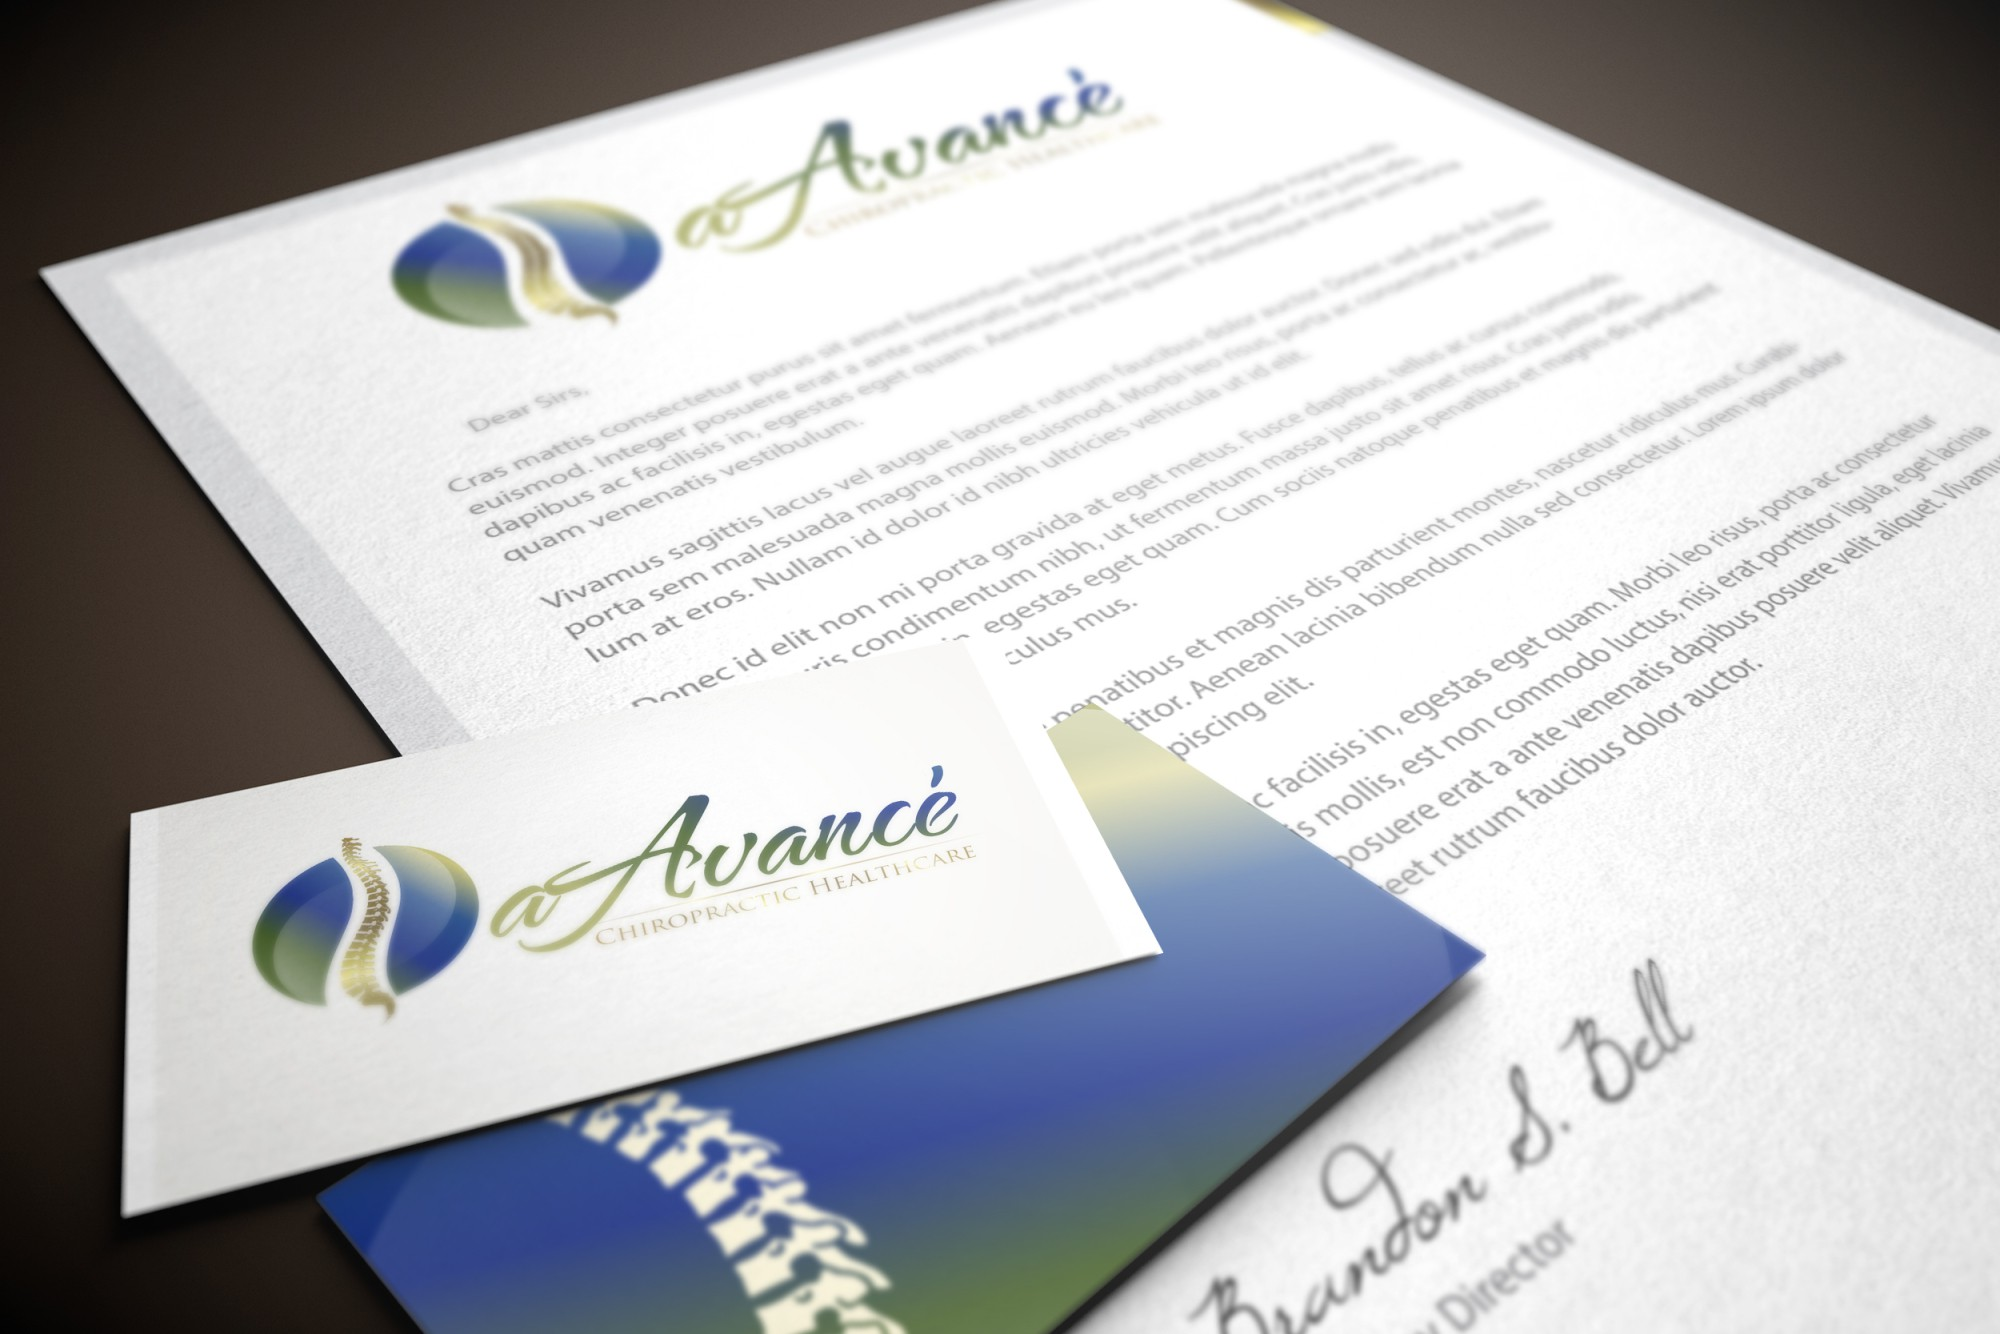 New logo wanted for aAvance' Chiropractic Healthcare